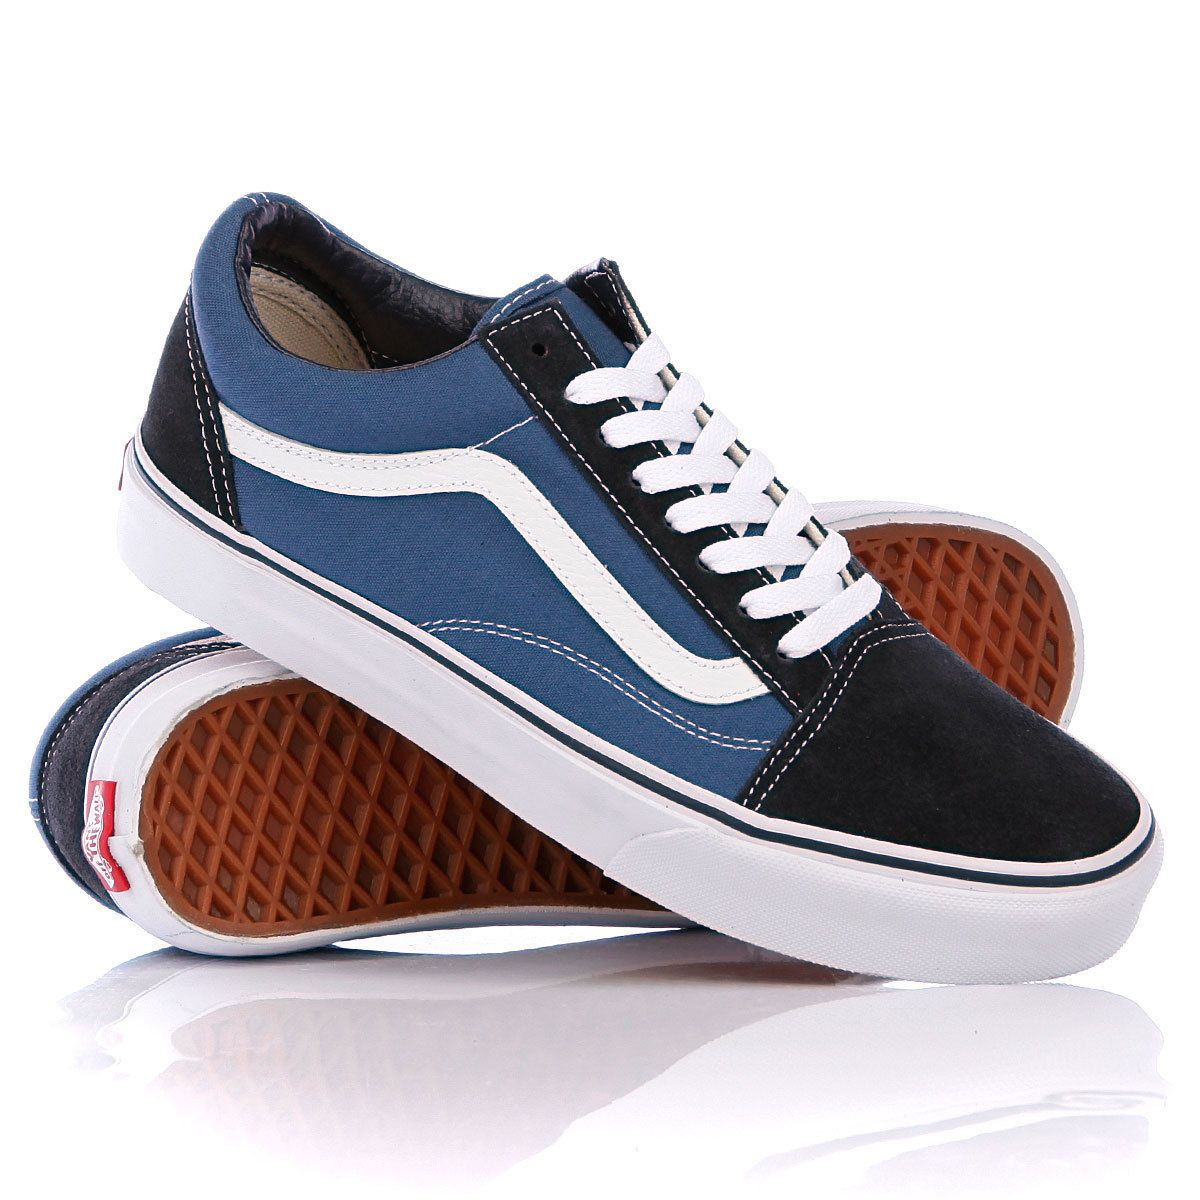 5b57f453fad VANS Old Skool Lite Navy STV Navy White UltraCush Casual Classic MEN S 7.5